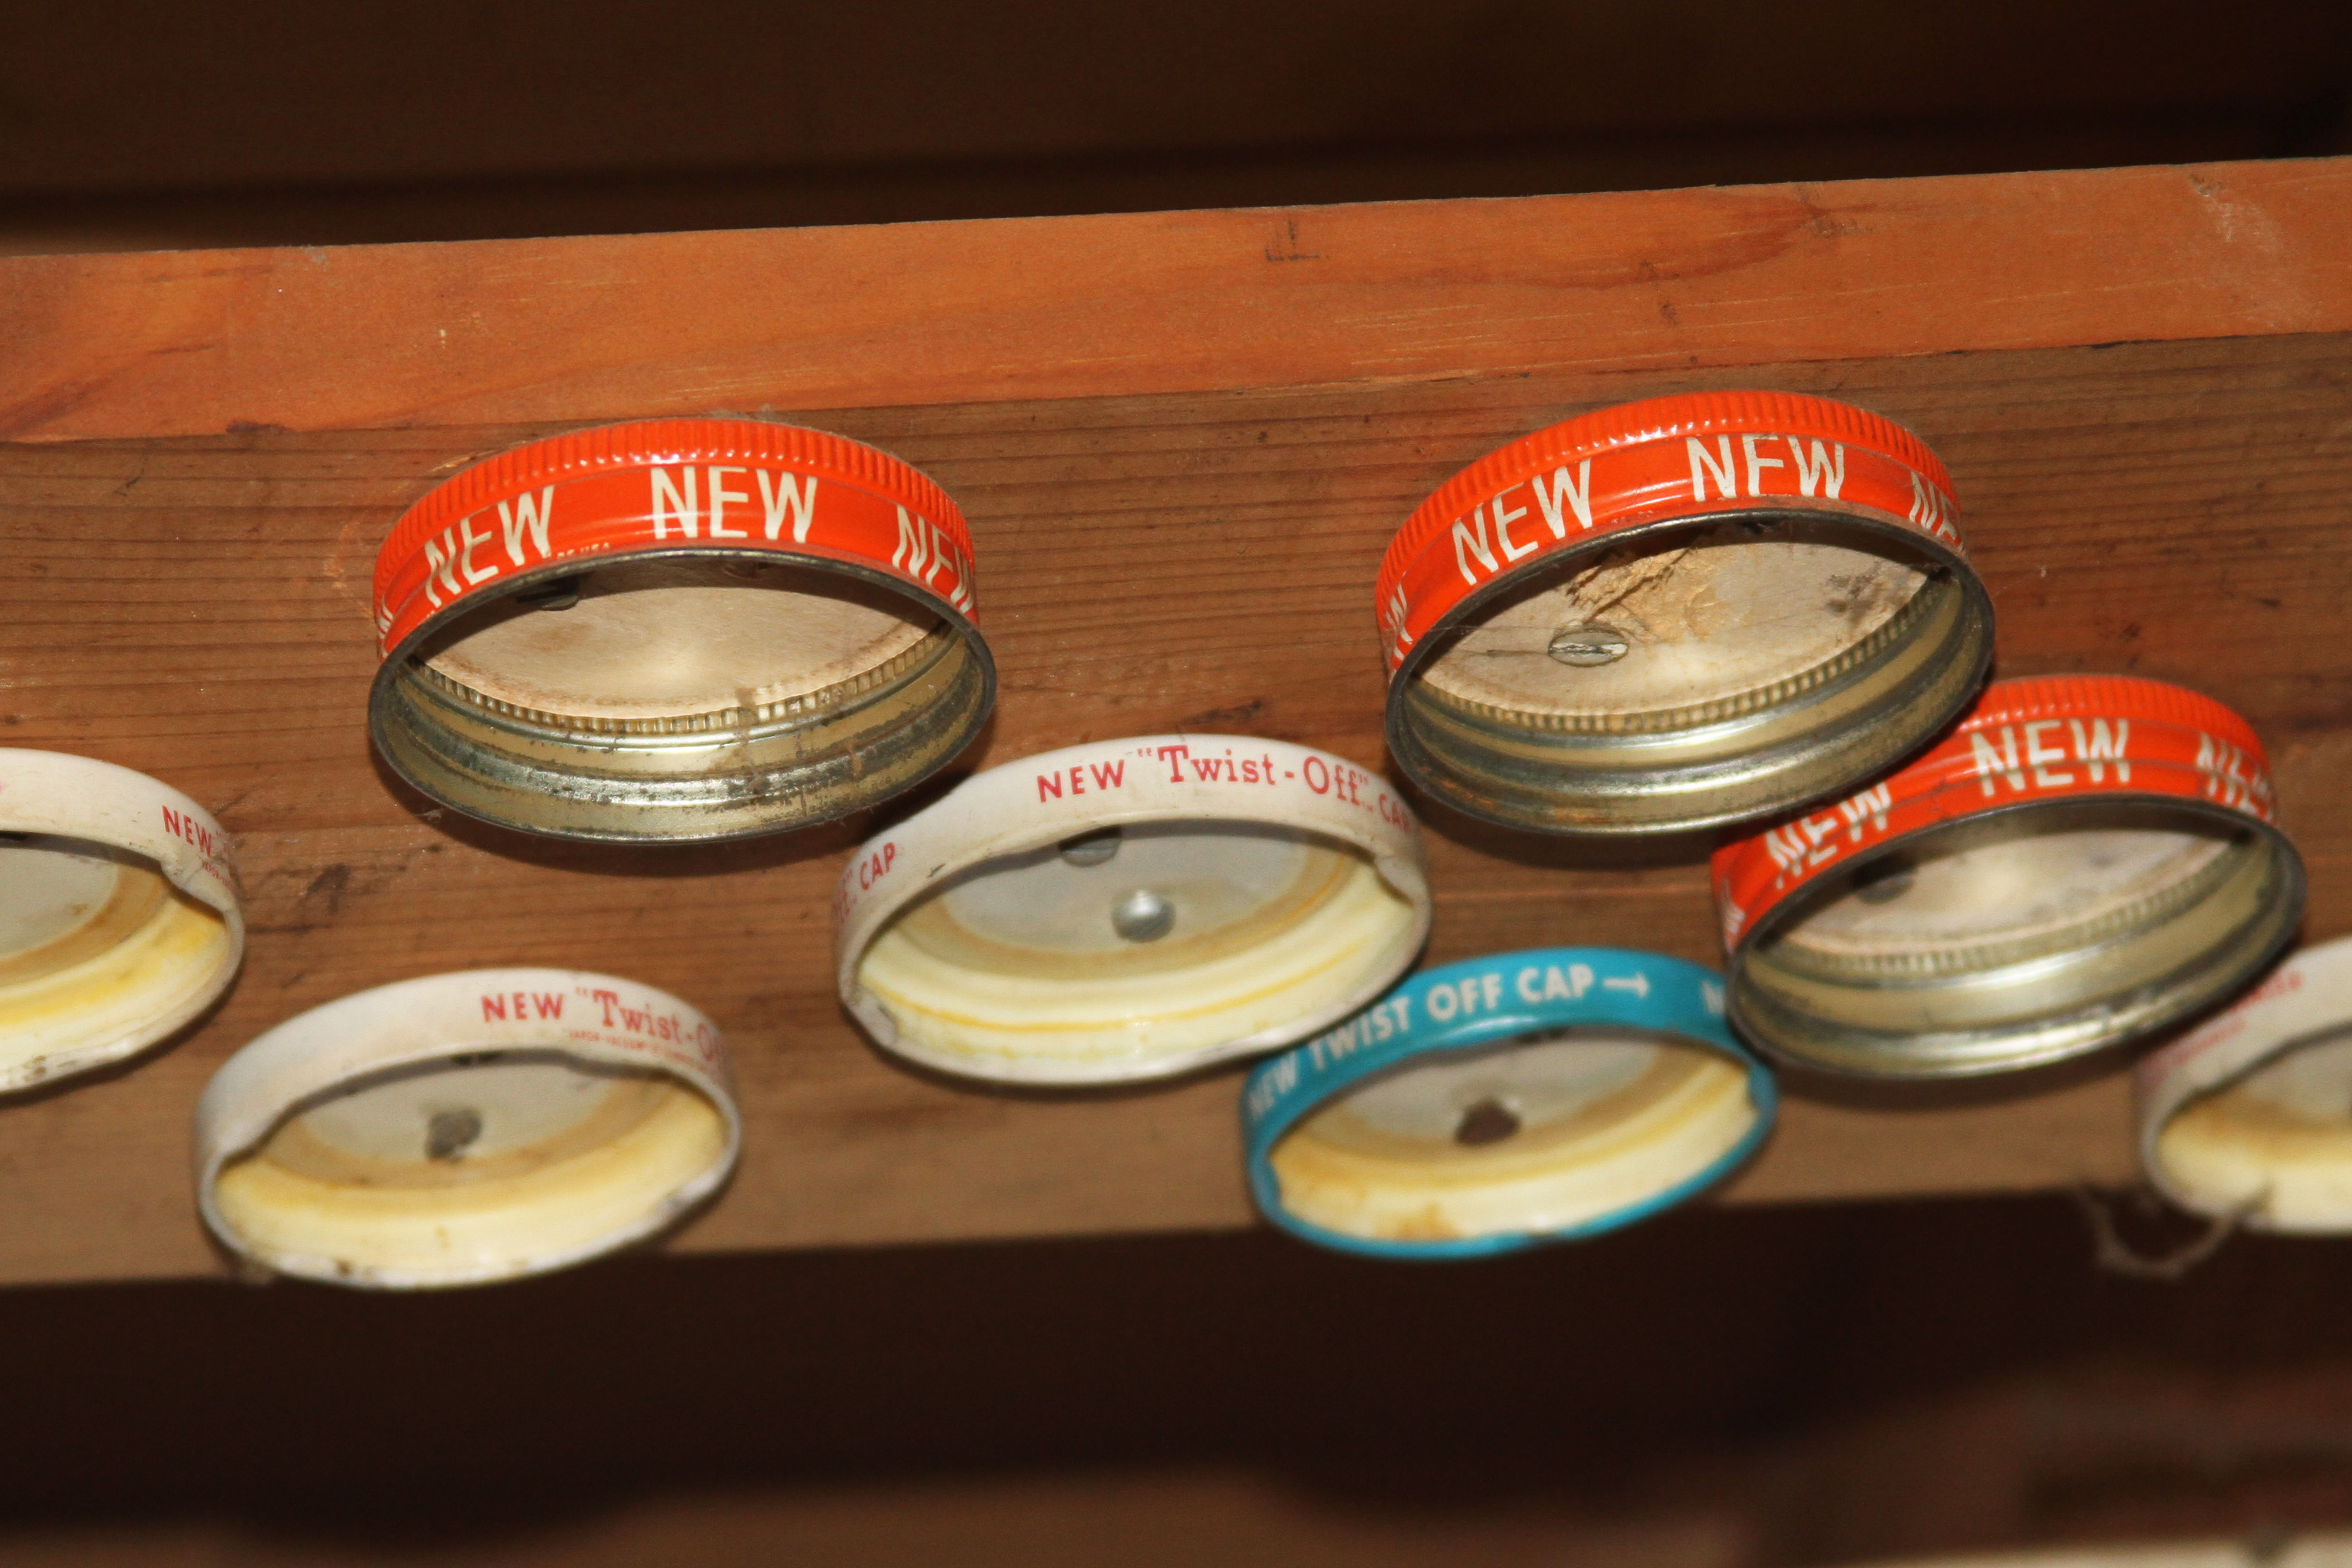 An Innovation from my past.  Some may call it a board with jar lids attached.  I call it the ceiling tool bench organizer.  Simply fill jars with items like nails or screws and attach jars to the appropriate lid.  Voila - organized and stored.